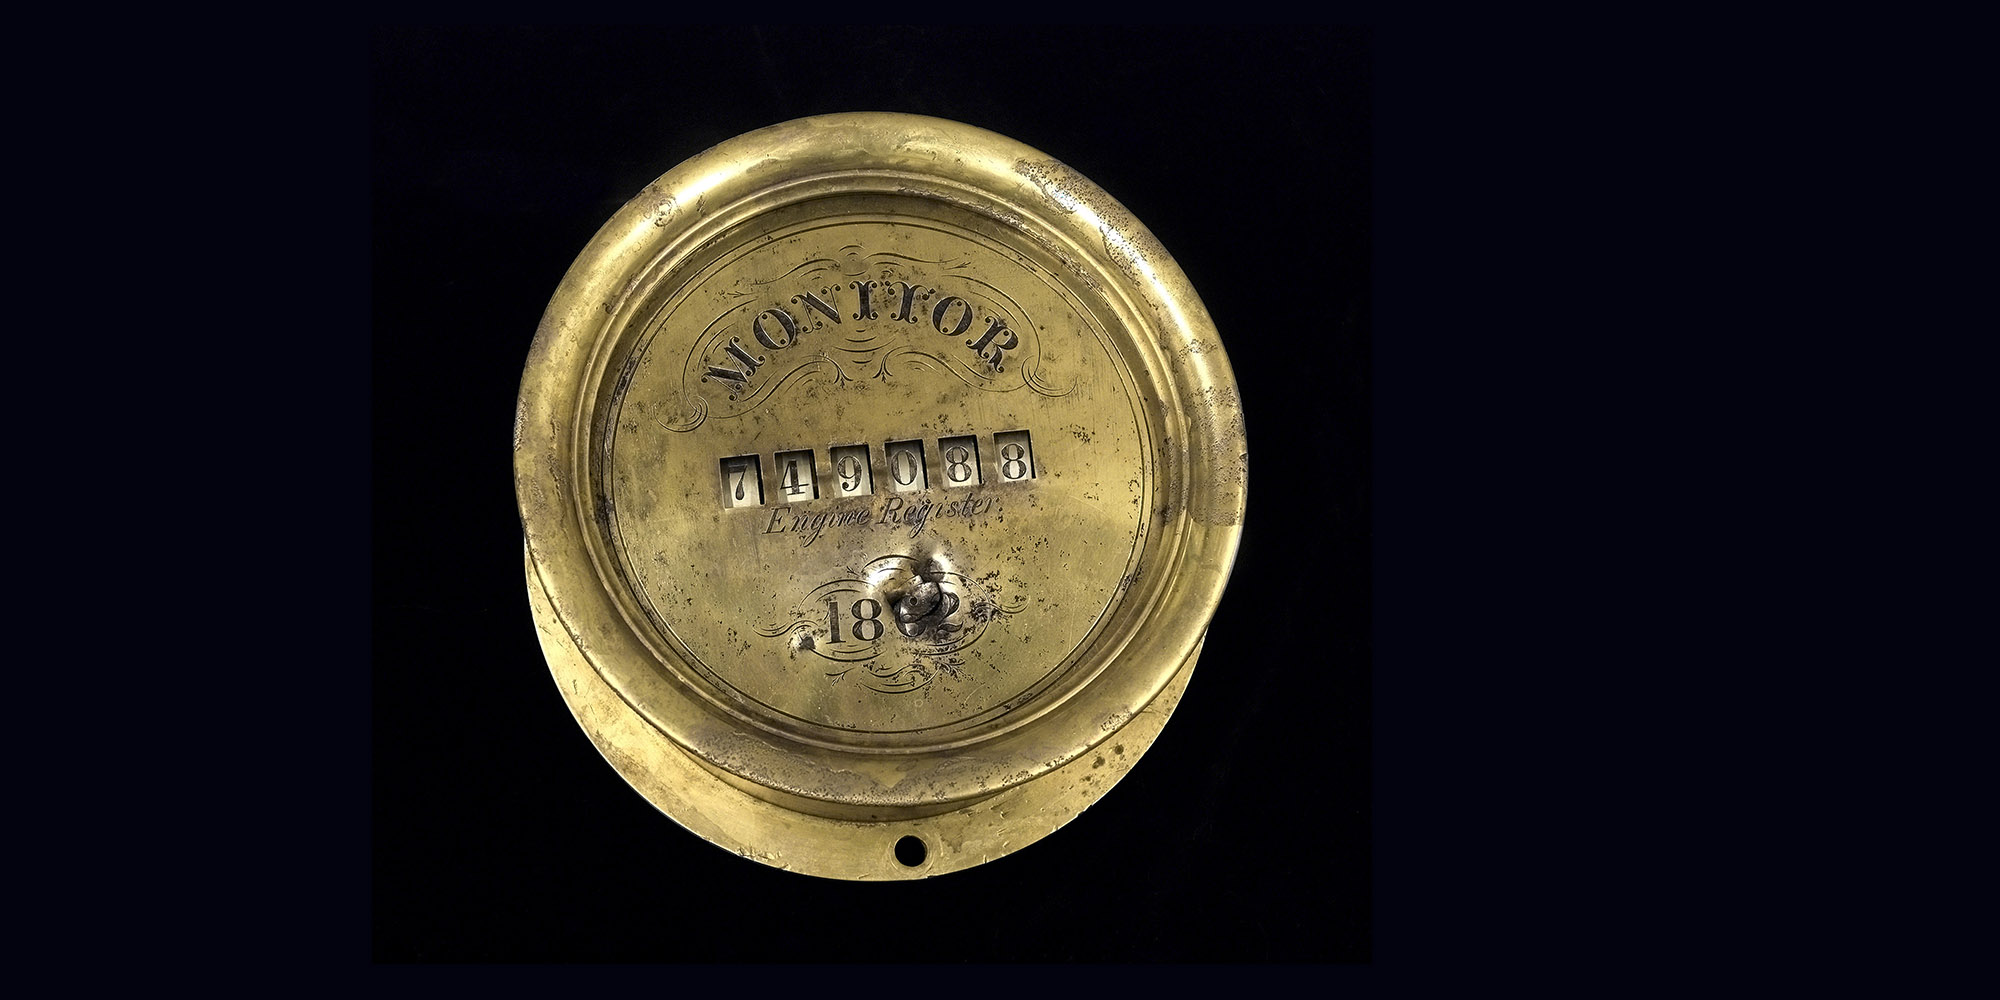 The USS Monitor's engine register, recovered in 2001